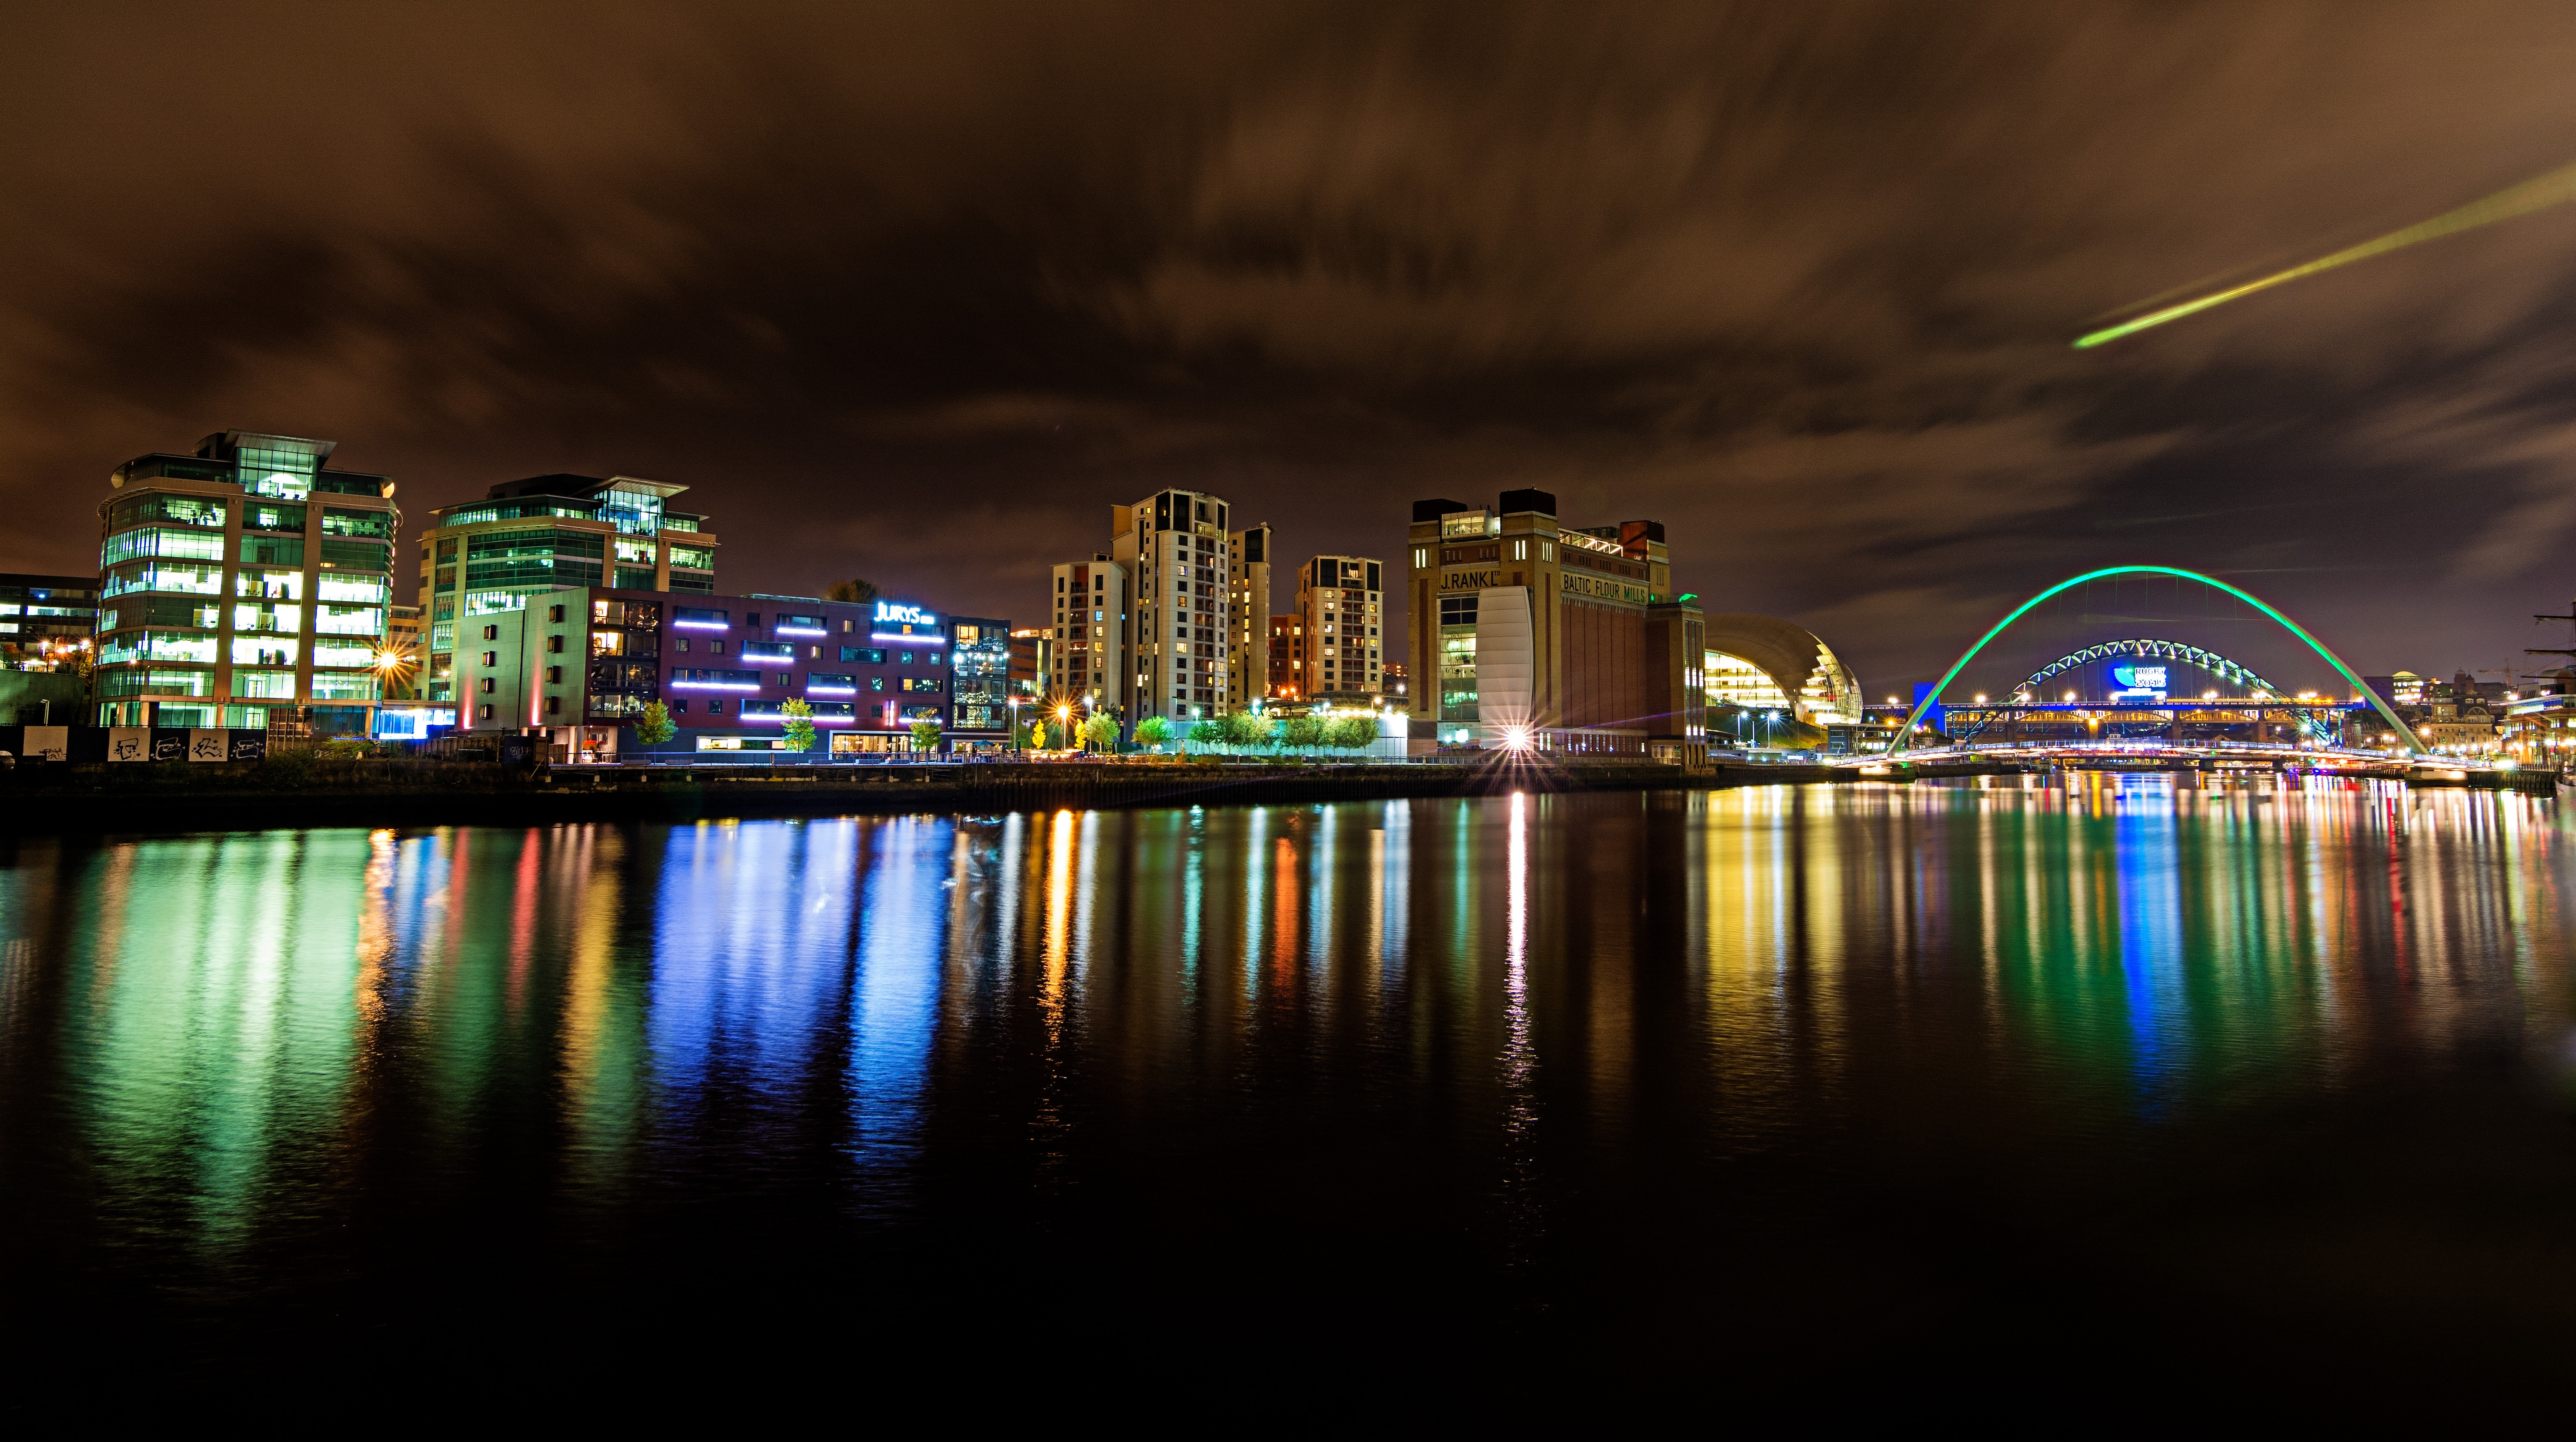 Cityscape at Nighttime Reflecting on Body of Water, Architecture, Reflections, Water, Travel, HQ Photo